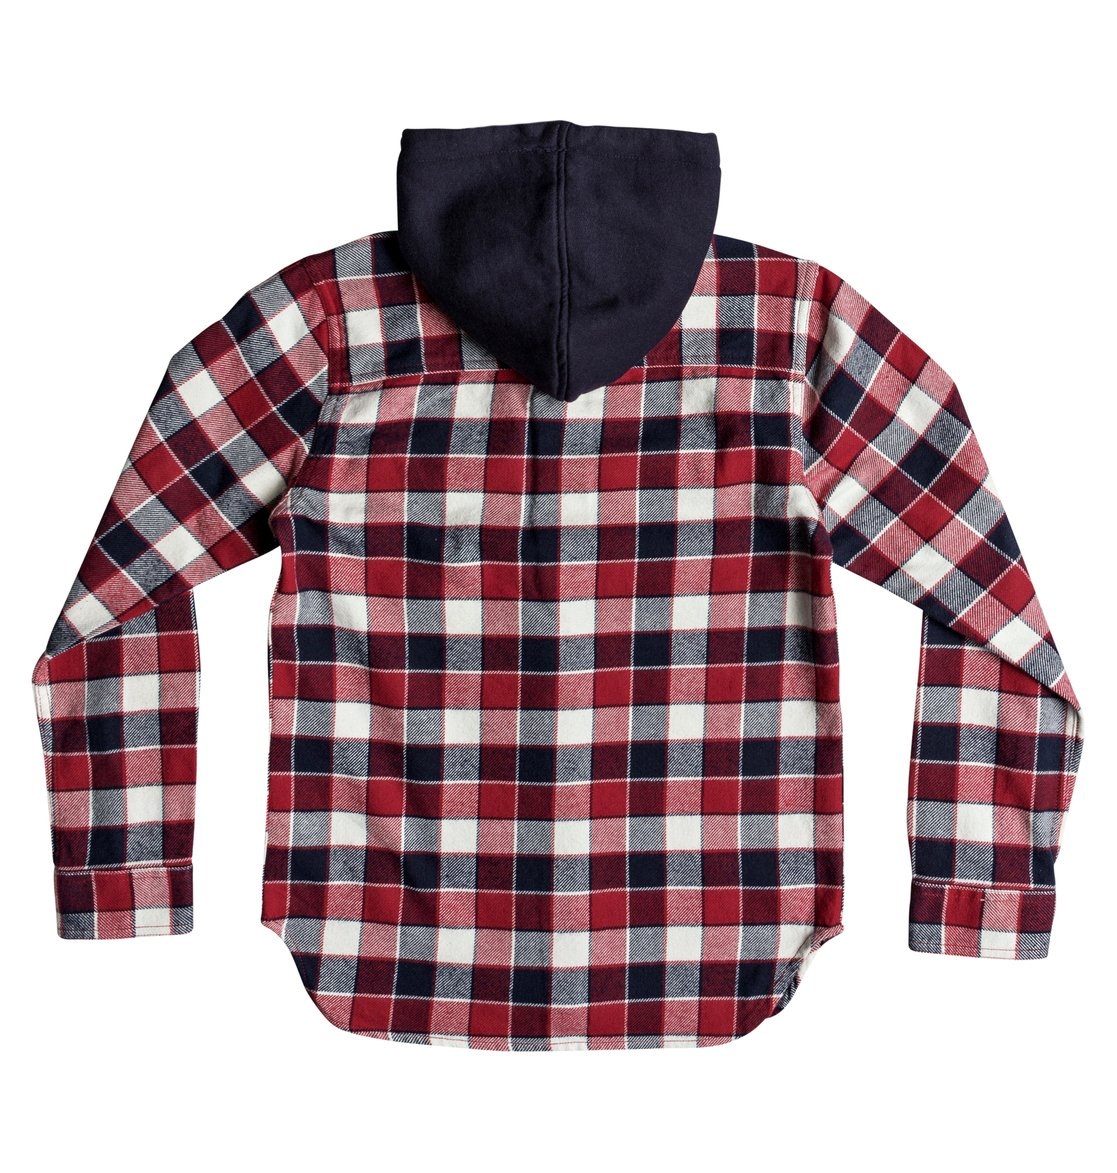 bc0120b6ac77 DC Shoes™ Boy's 8-16 Runnels Long Sleeve Hooded Flannel Shirt ...